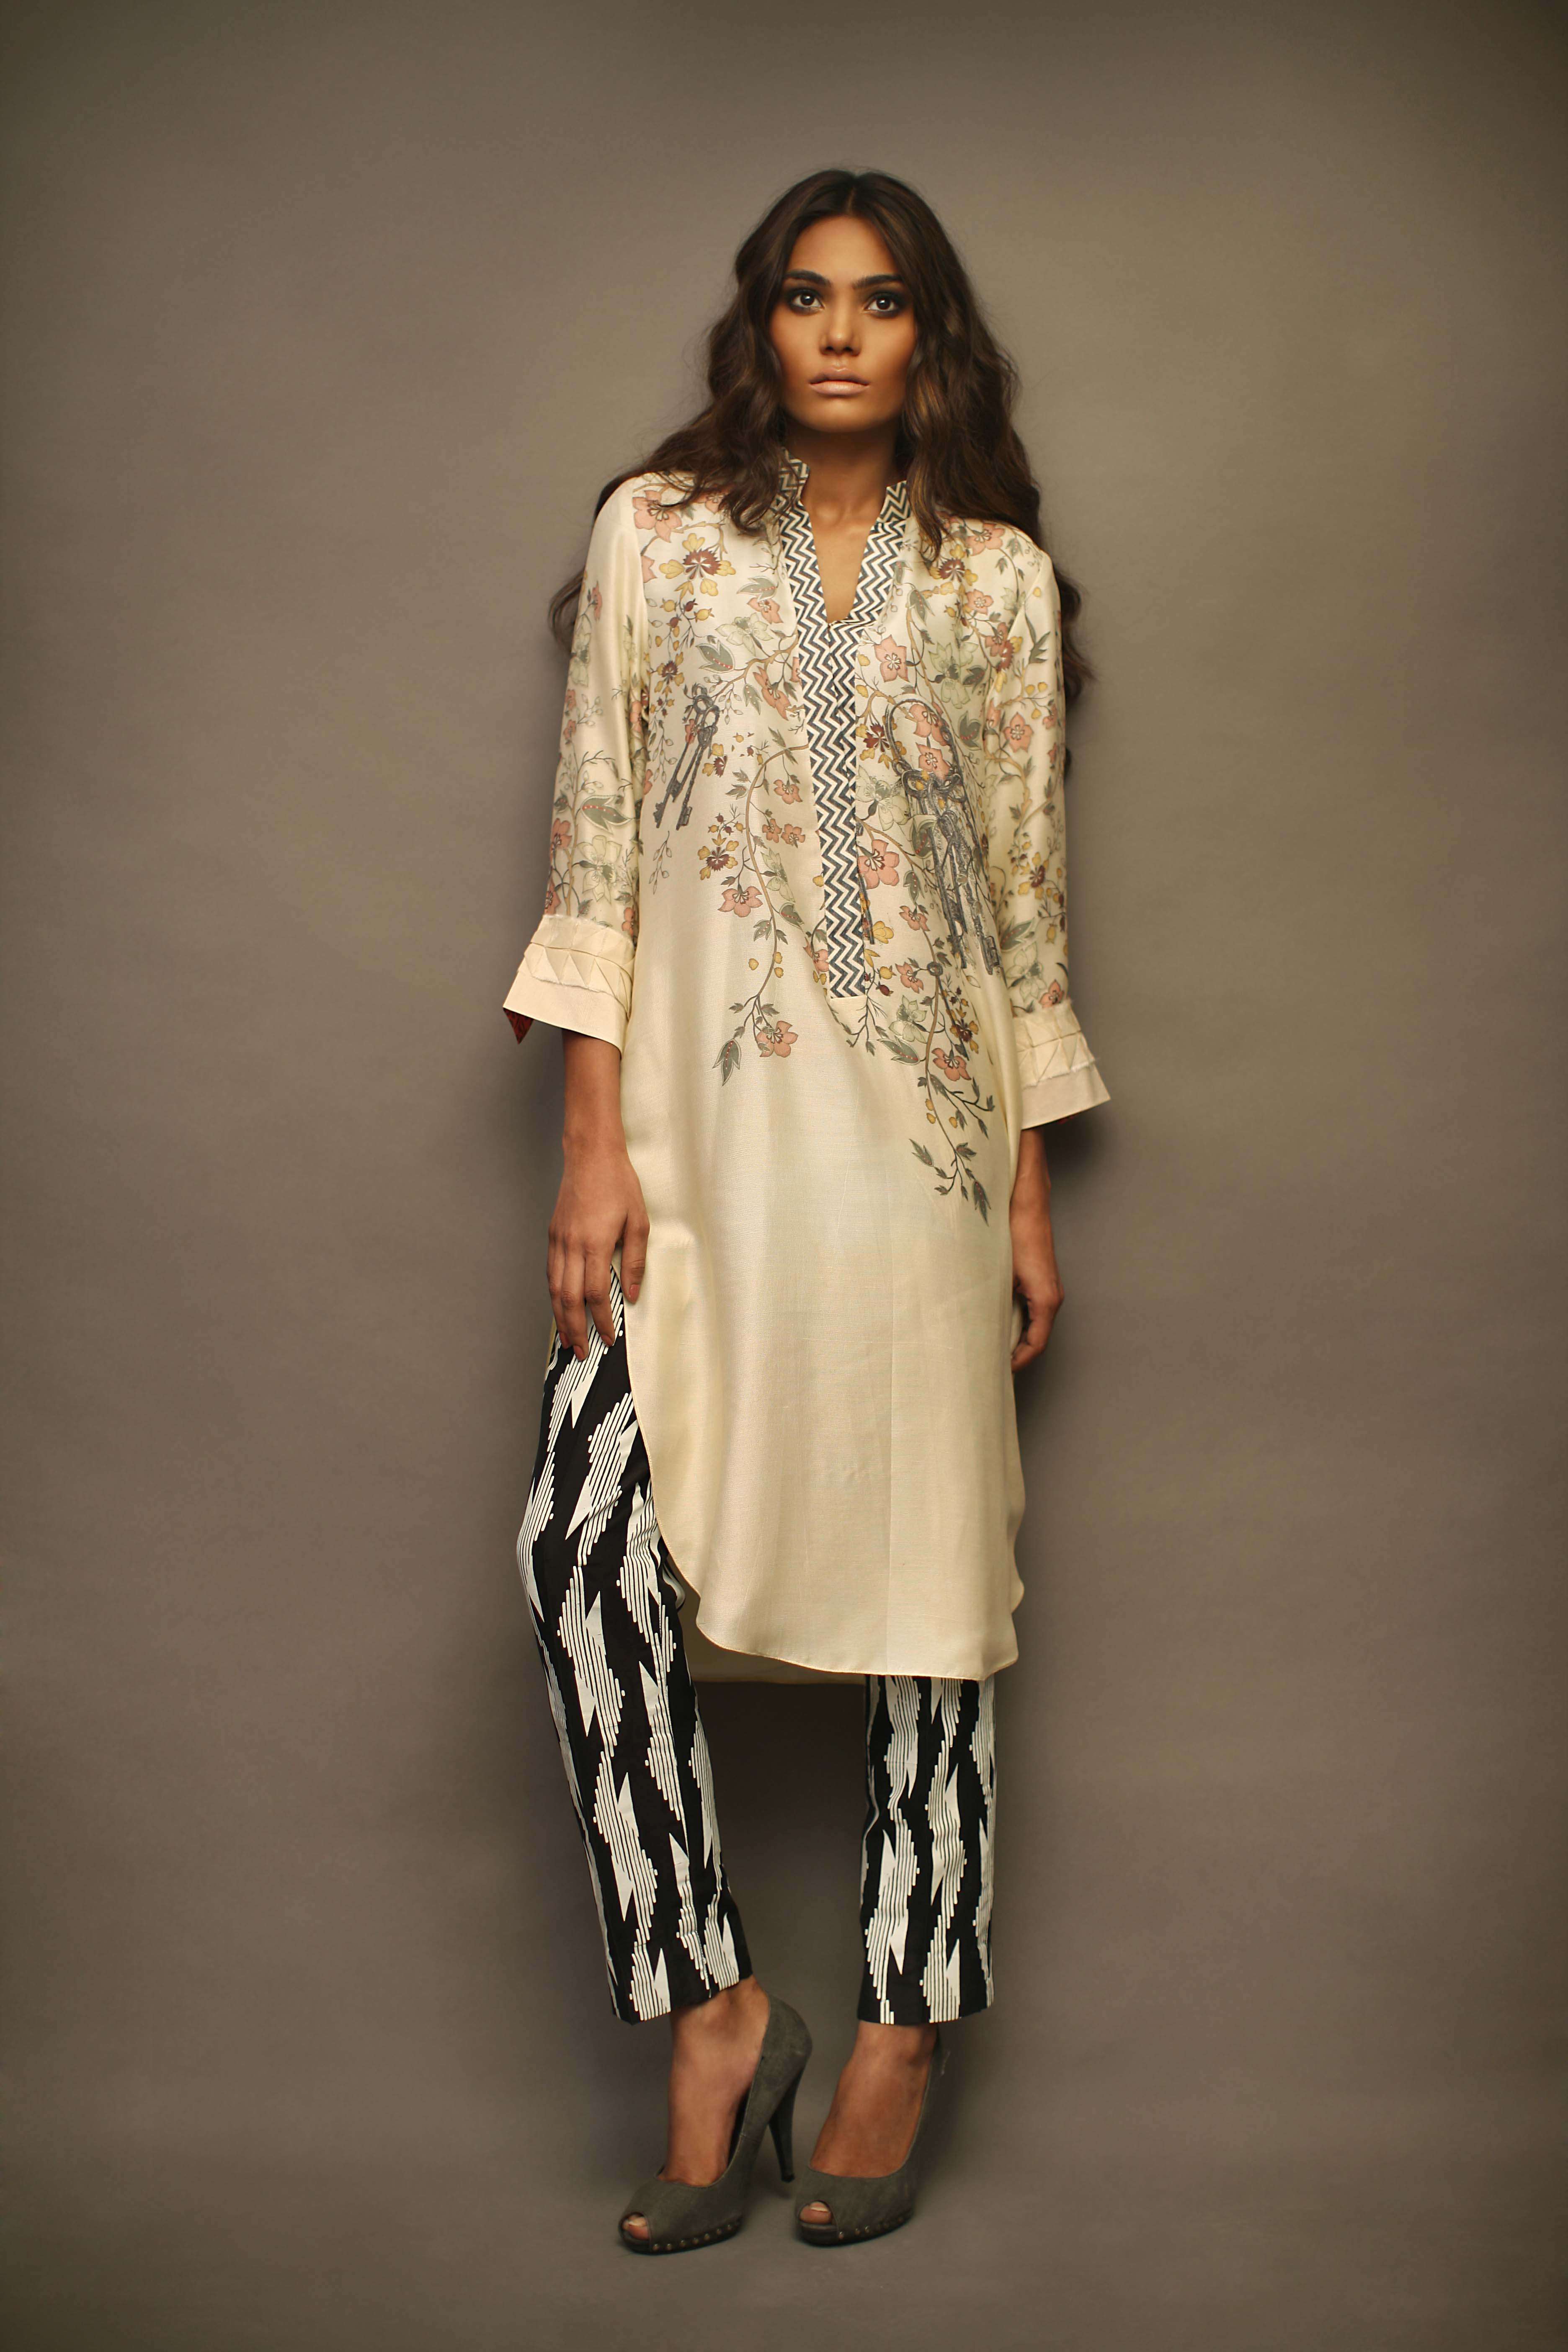 SANIA MASKATIYA BAR-E-SAGHEER EID COLLECTION